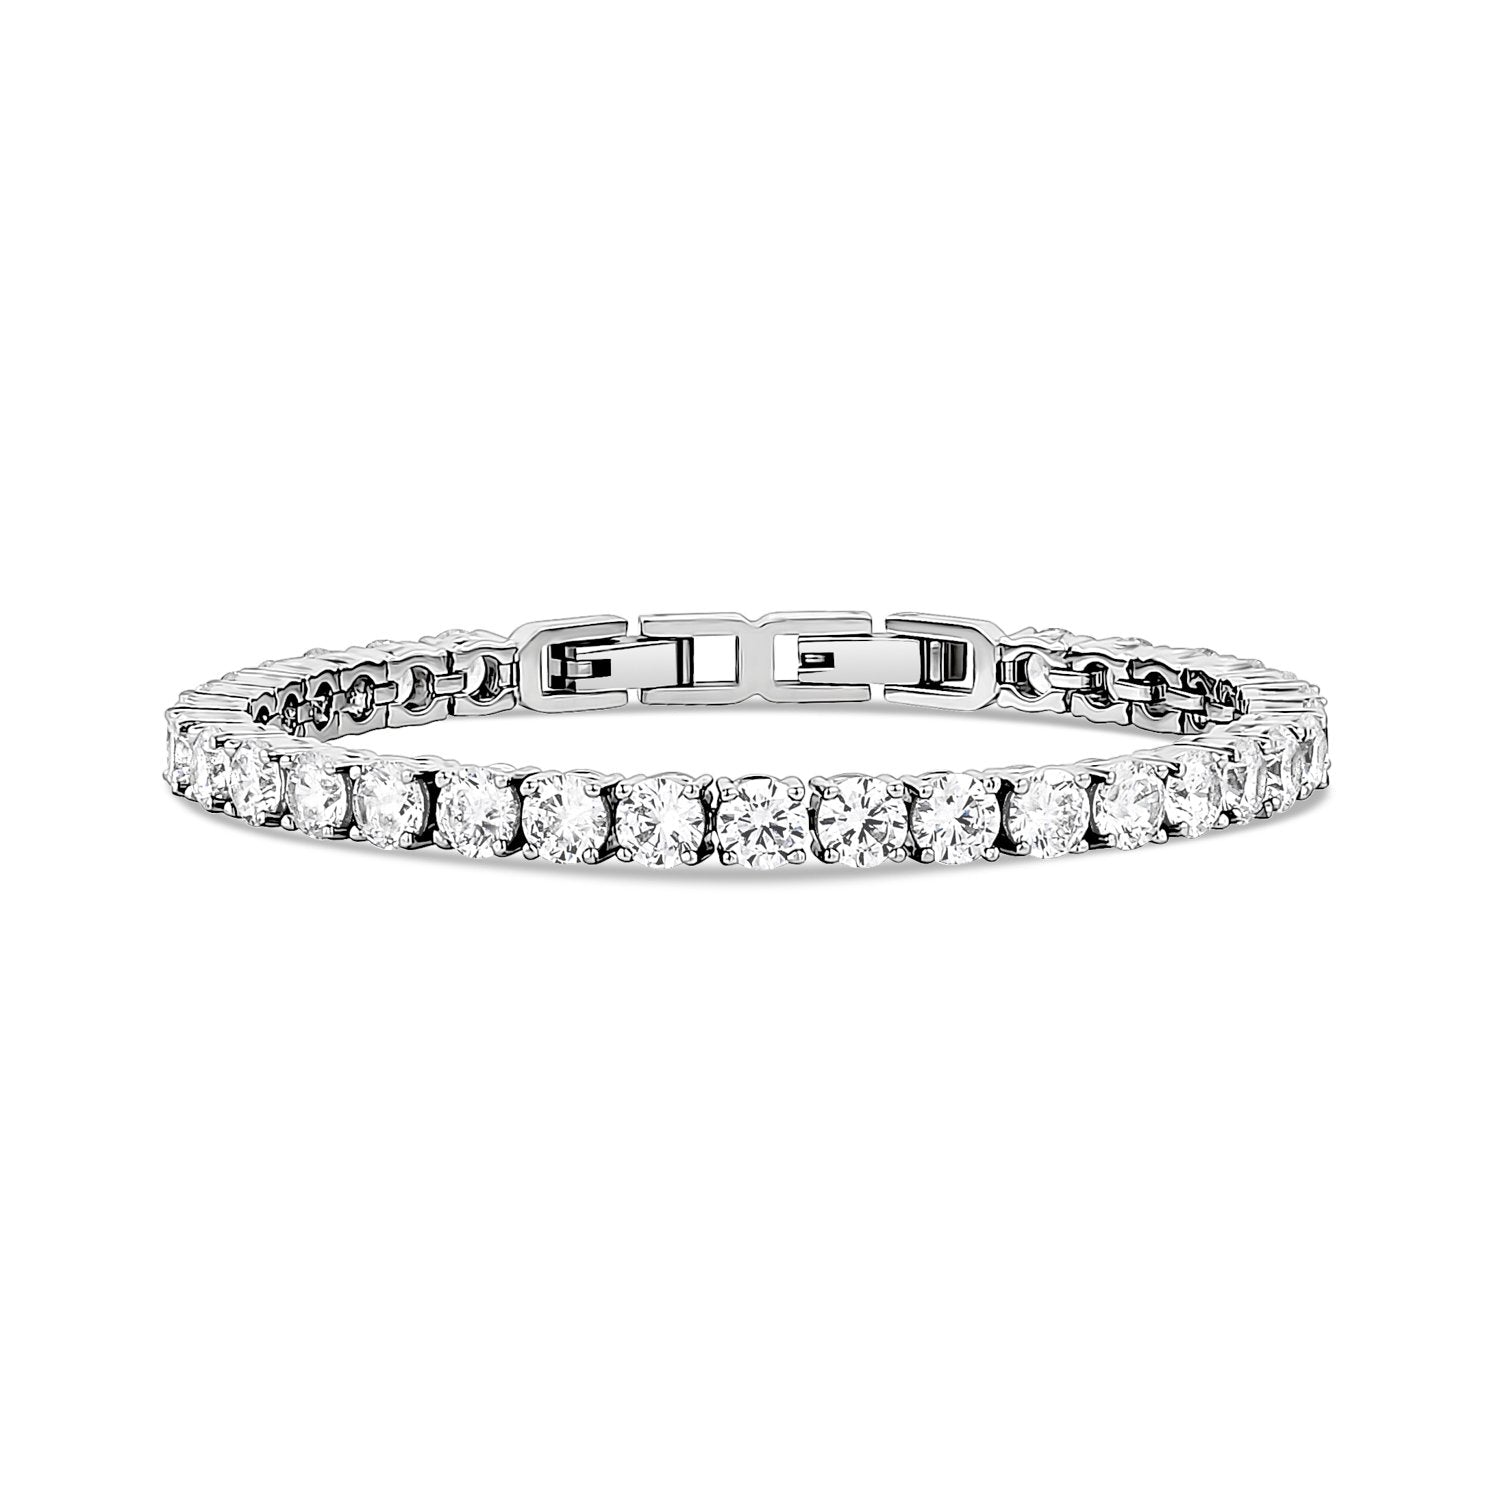 Women Bracelet - 5mm Cubic Zircon Stainless Steel Tennis Bracelet